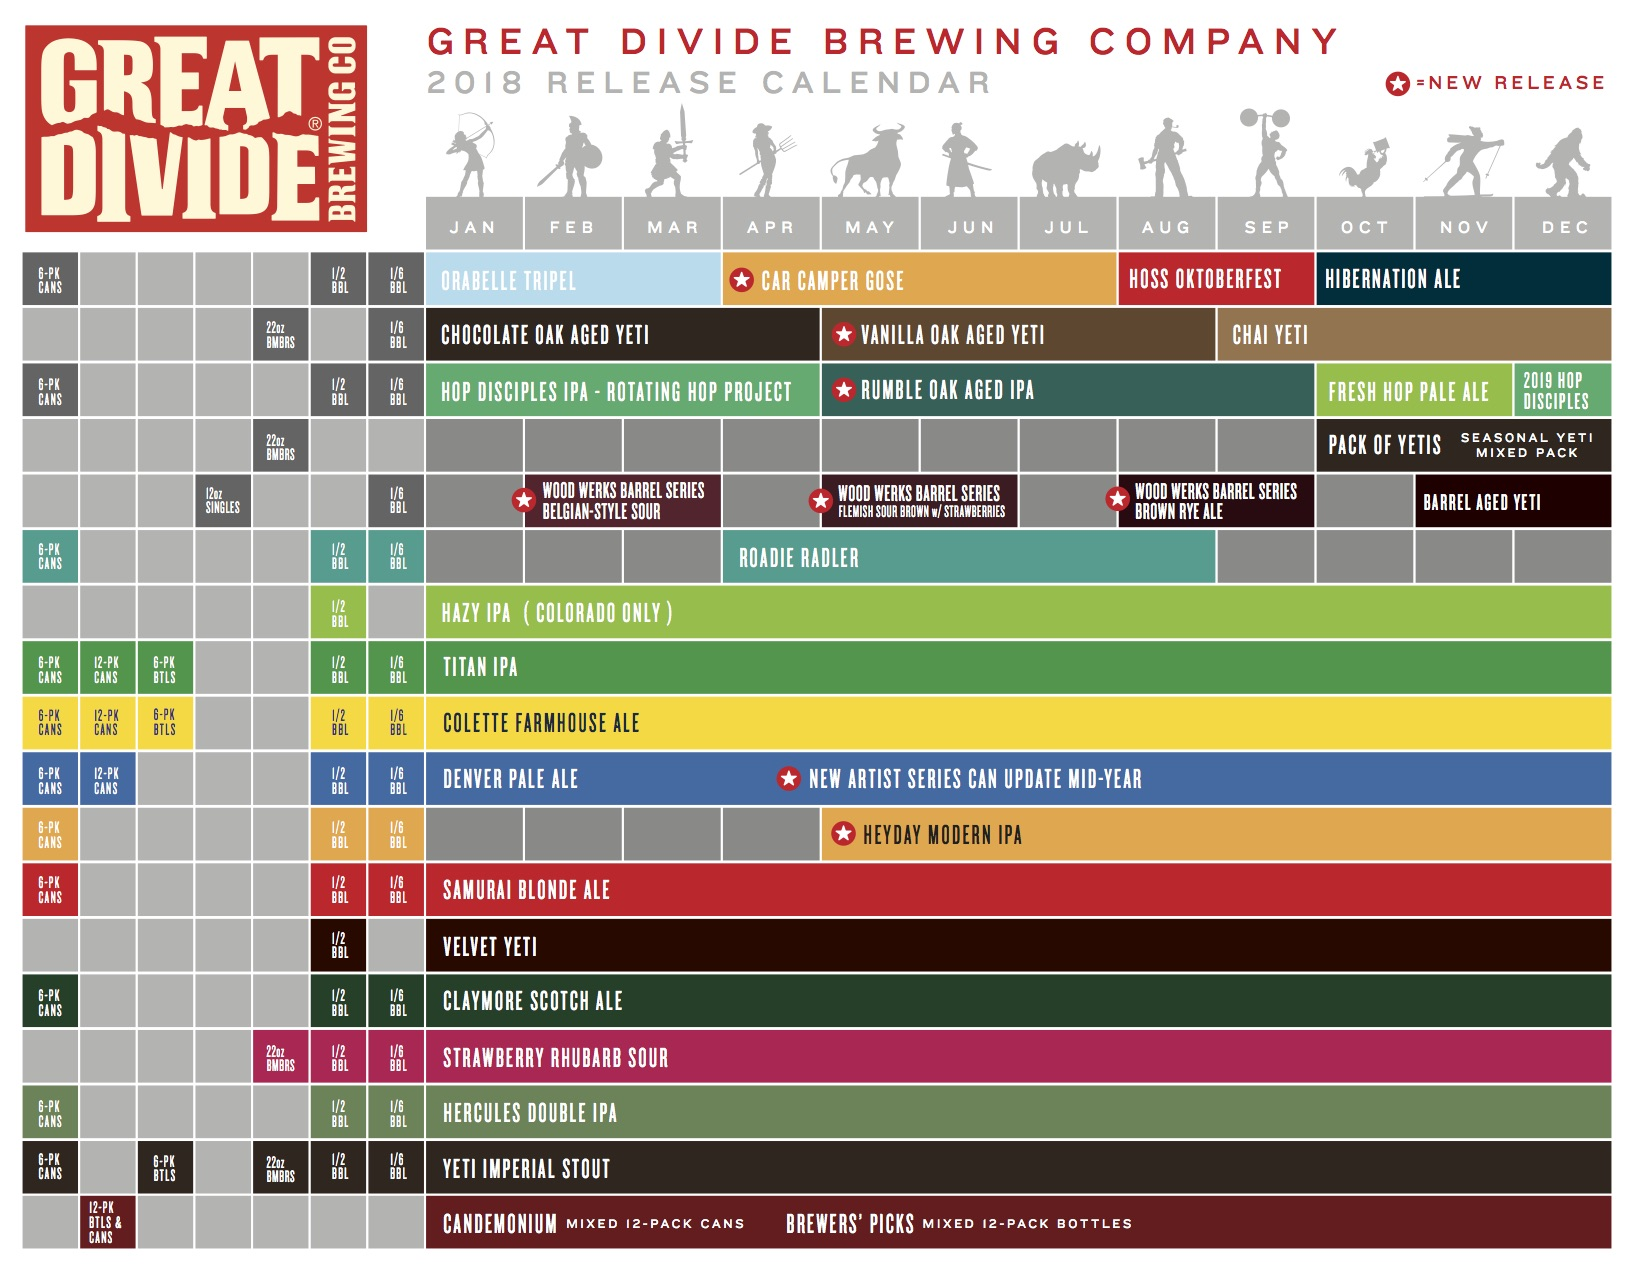 DENVER — Great Divide Brewing Company will introduce seven new beers in  2018 b2af92c68e83f